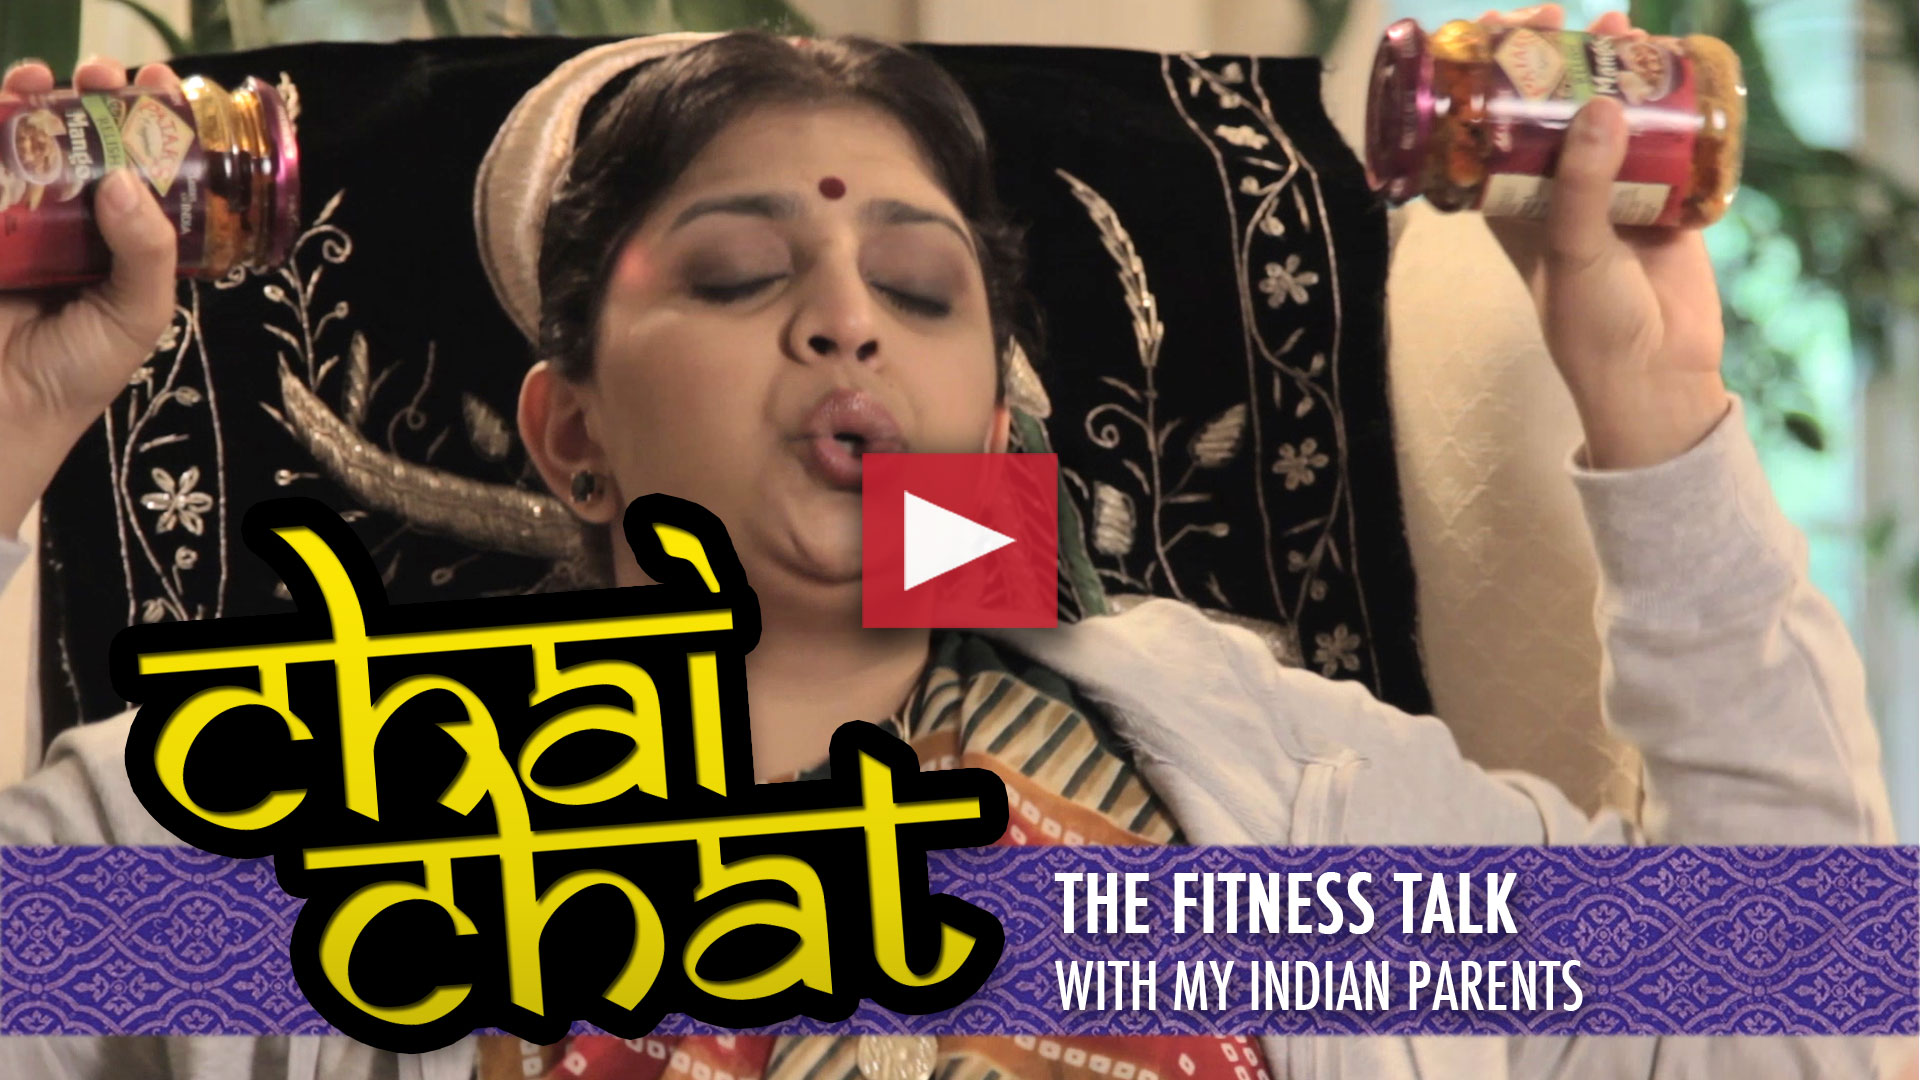 Chai Chat: The Fitness Talk with My Indian Parents